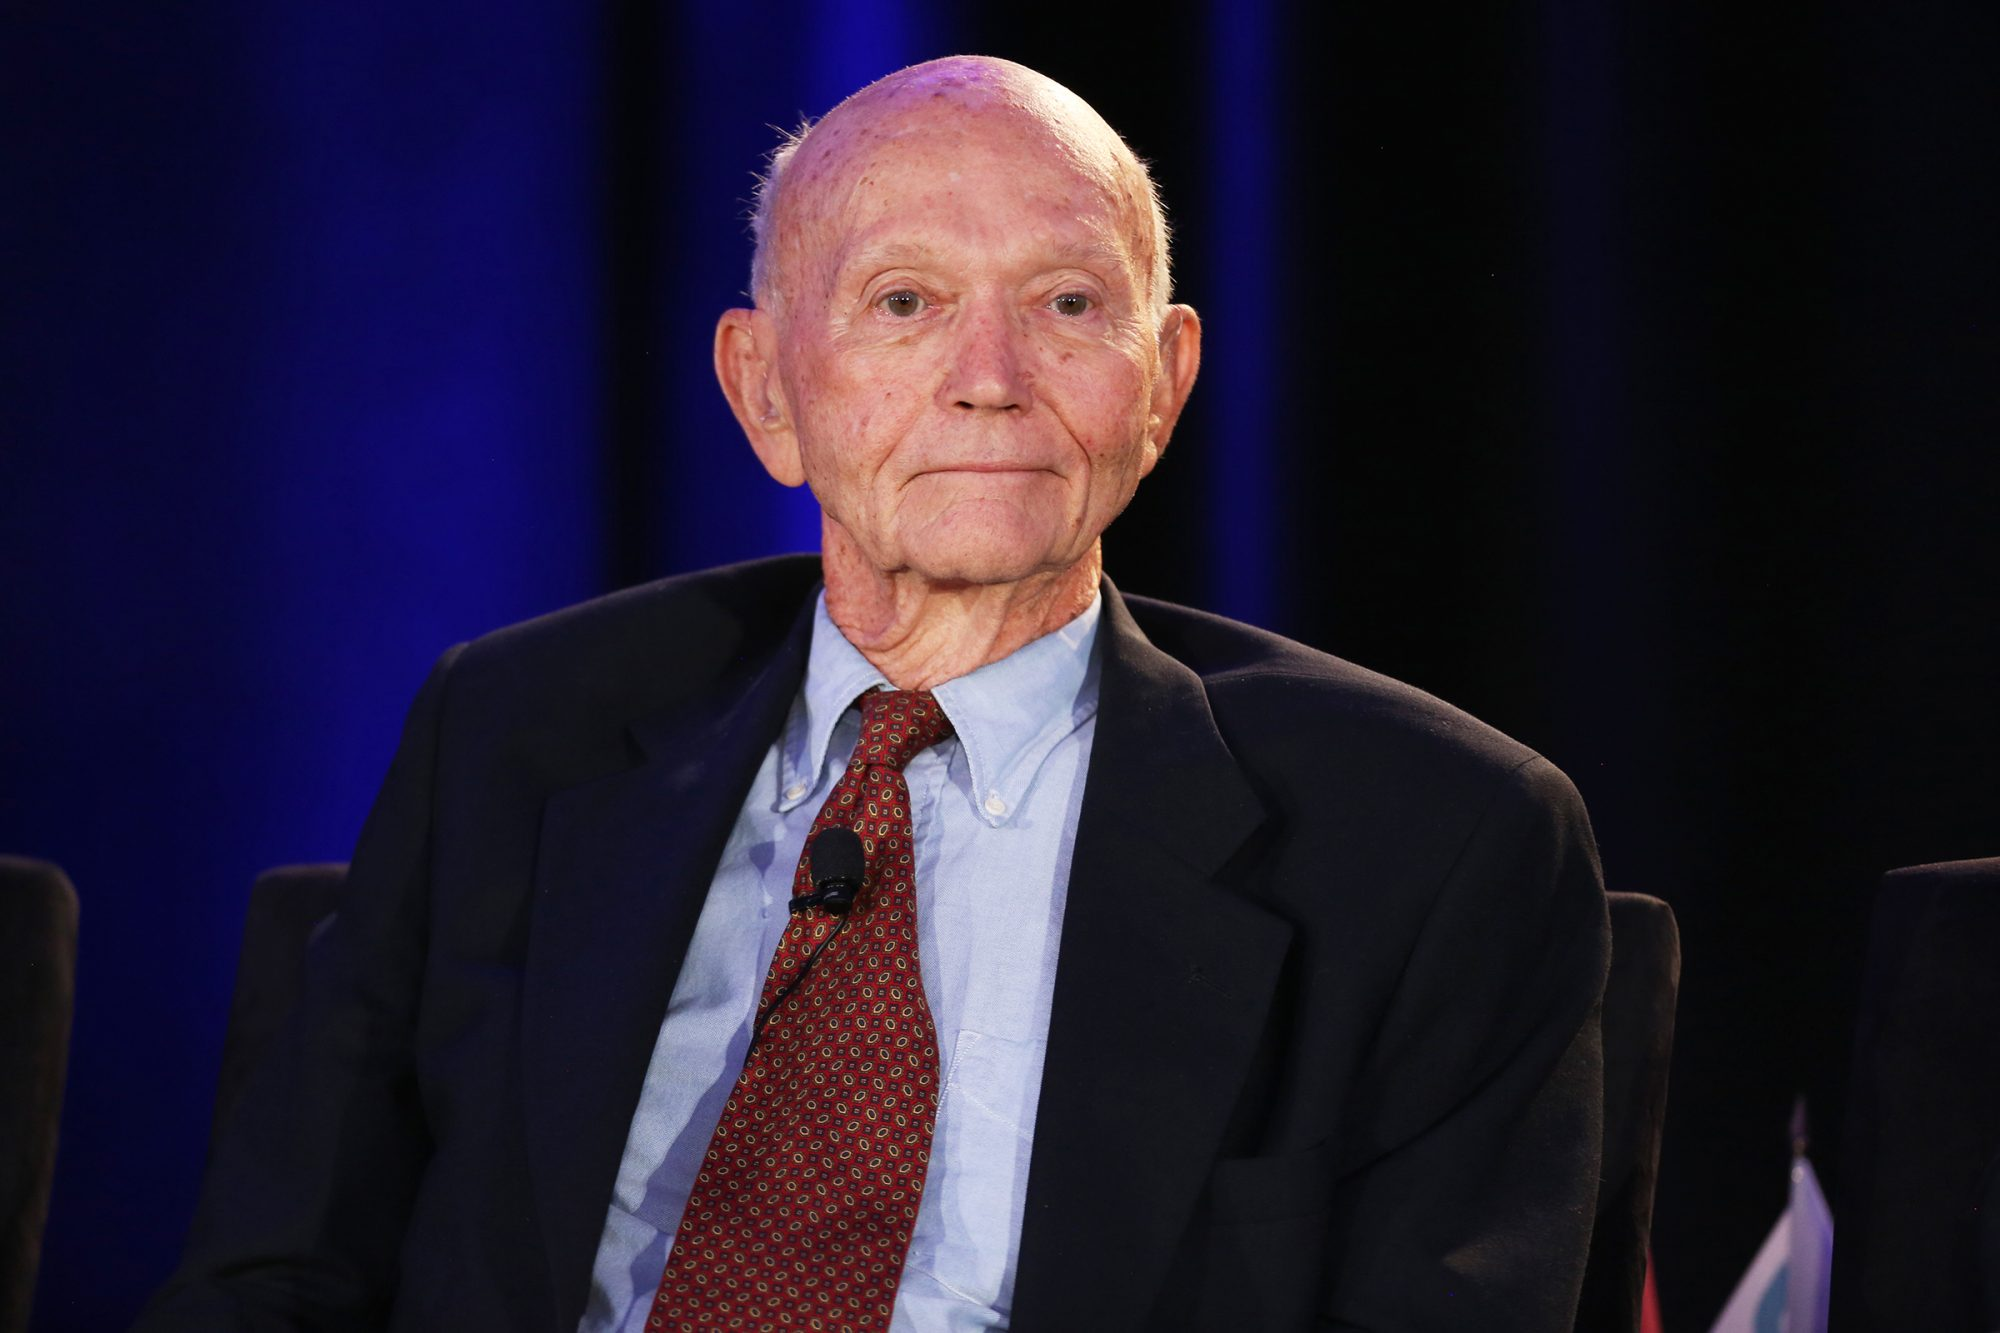 'Loneliest' Astronaut Michael Collins, Who Flew on Apollo 11 Mission to the Moon, Dies at 90